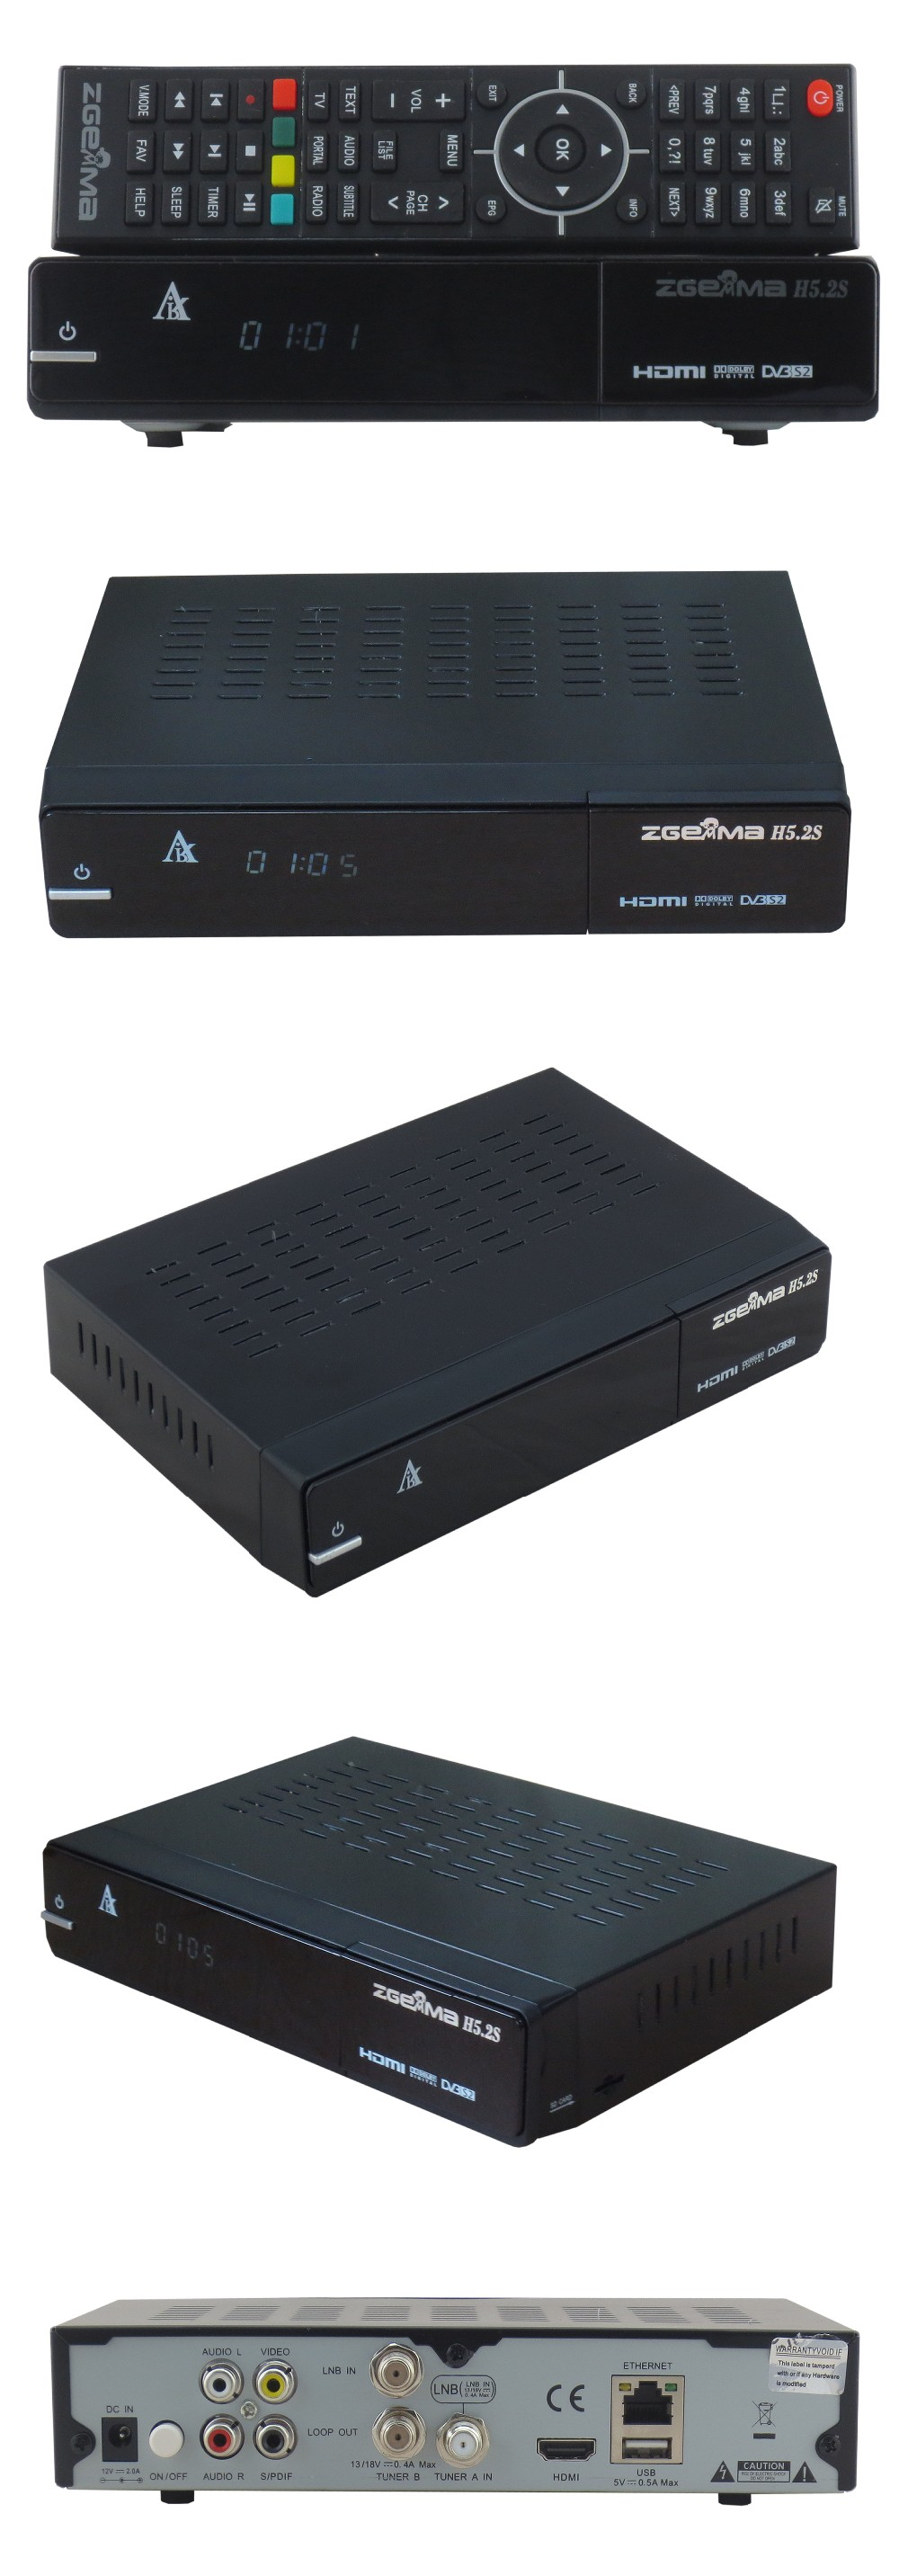 Multi-Features Zgemma H5.2S Satellite Receiver&Media Player Dual Core Linux OS H.265/HEVC DVB-S2+S2 Twin Tuners